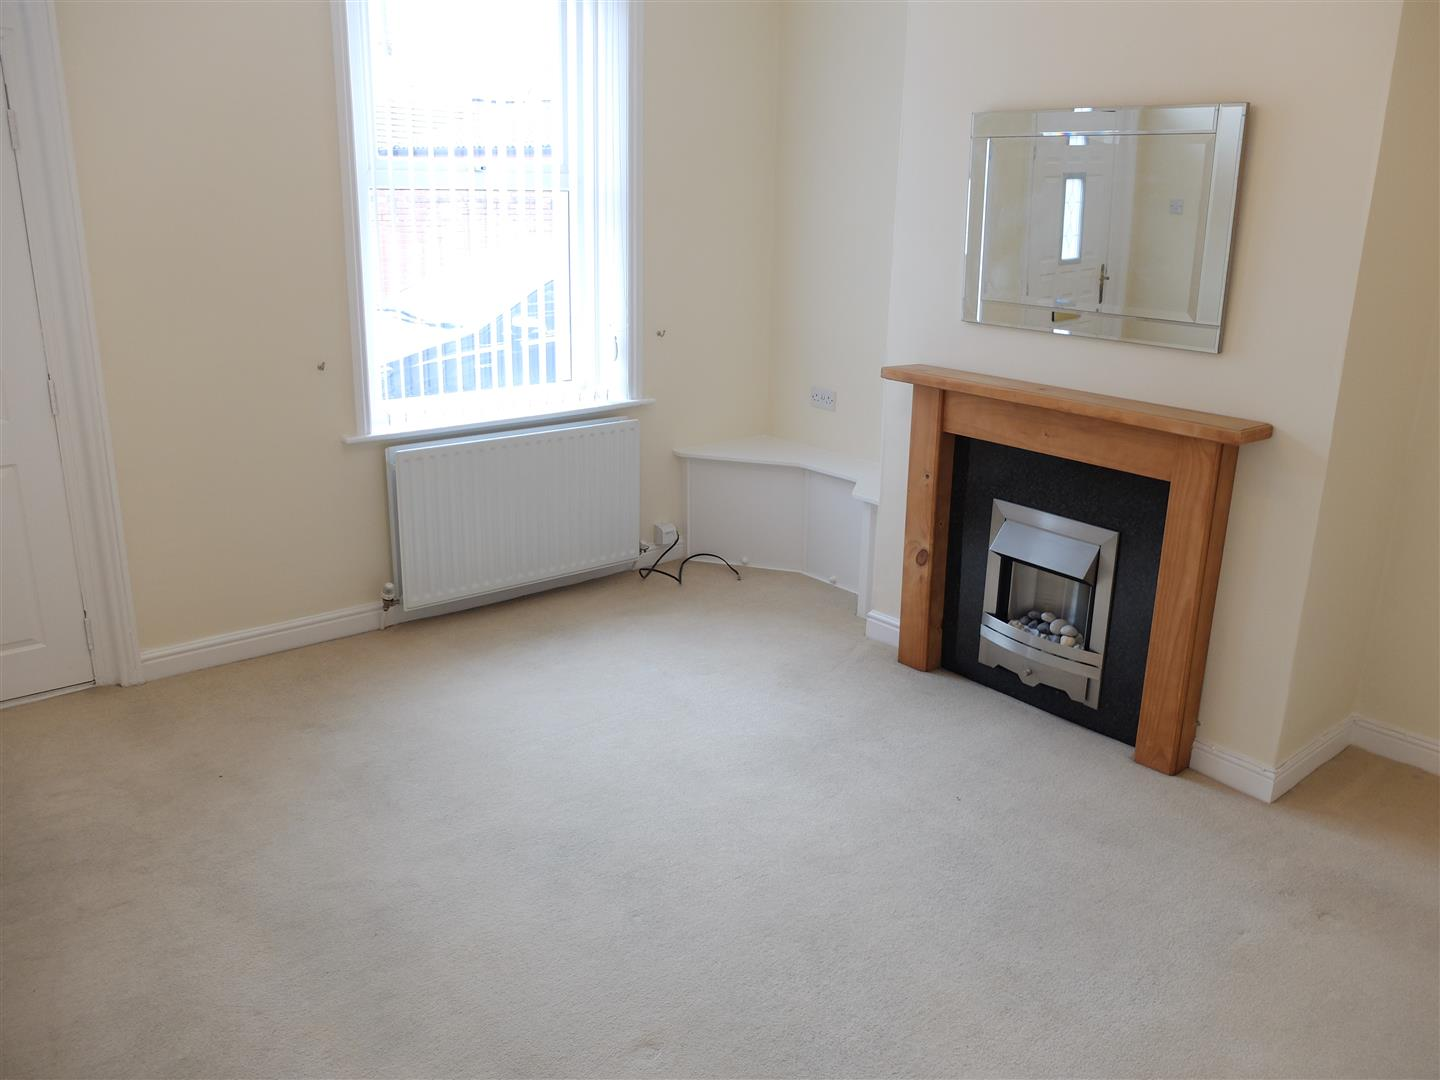 2 Bedrooms House - Mid Terrace For Sale 8 Melrose Terrace Carlisle